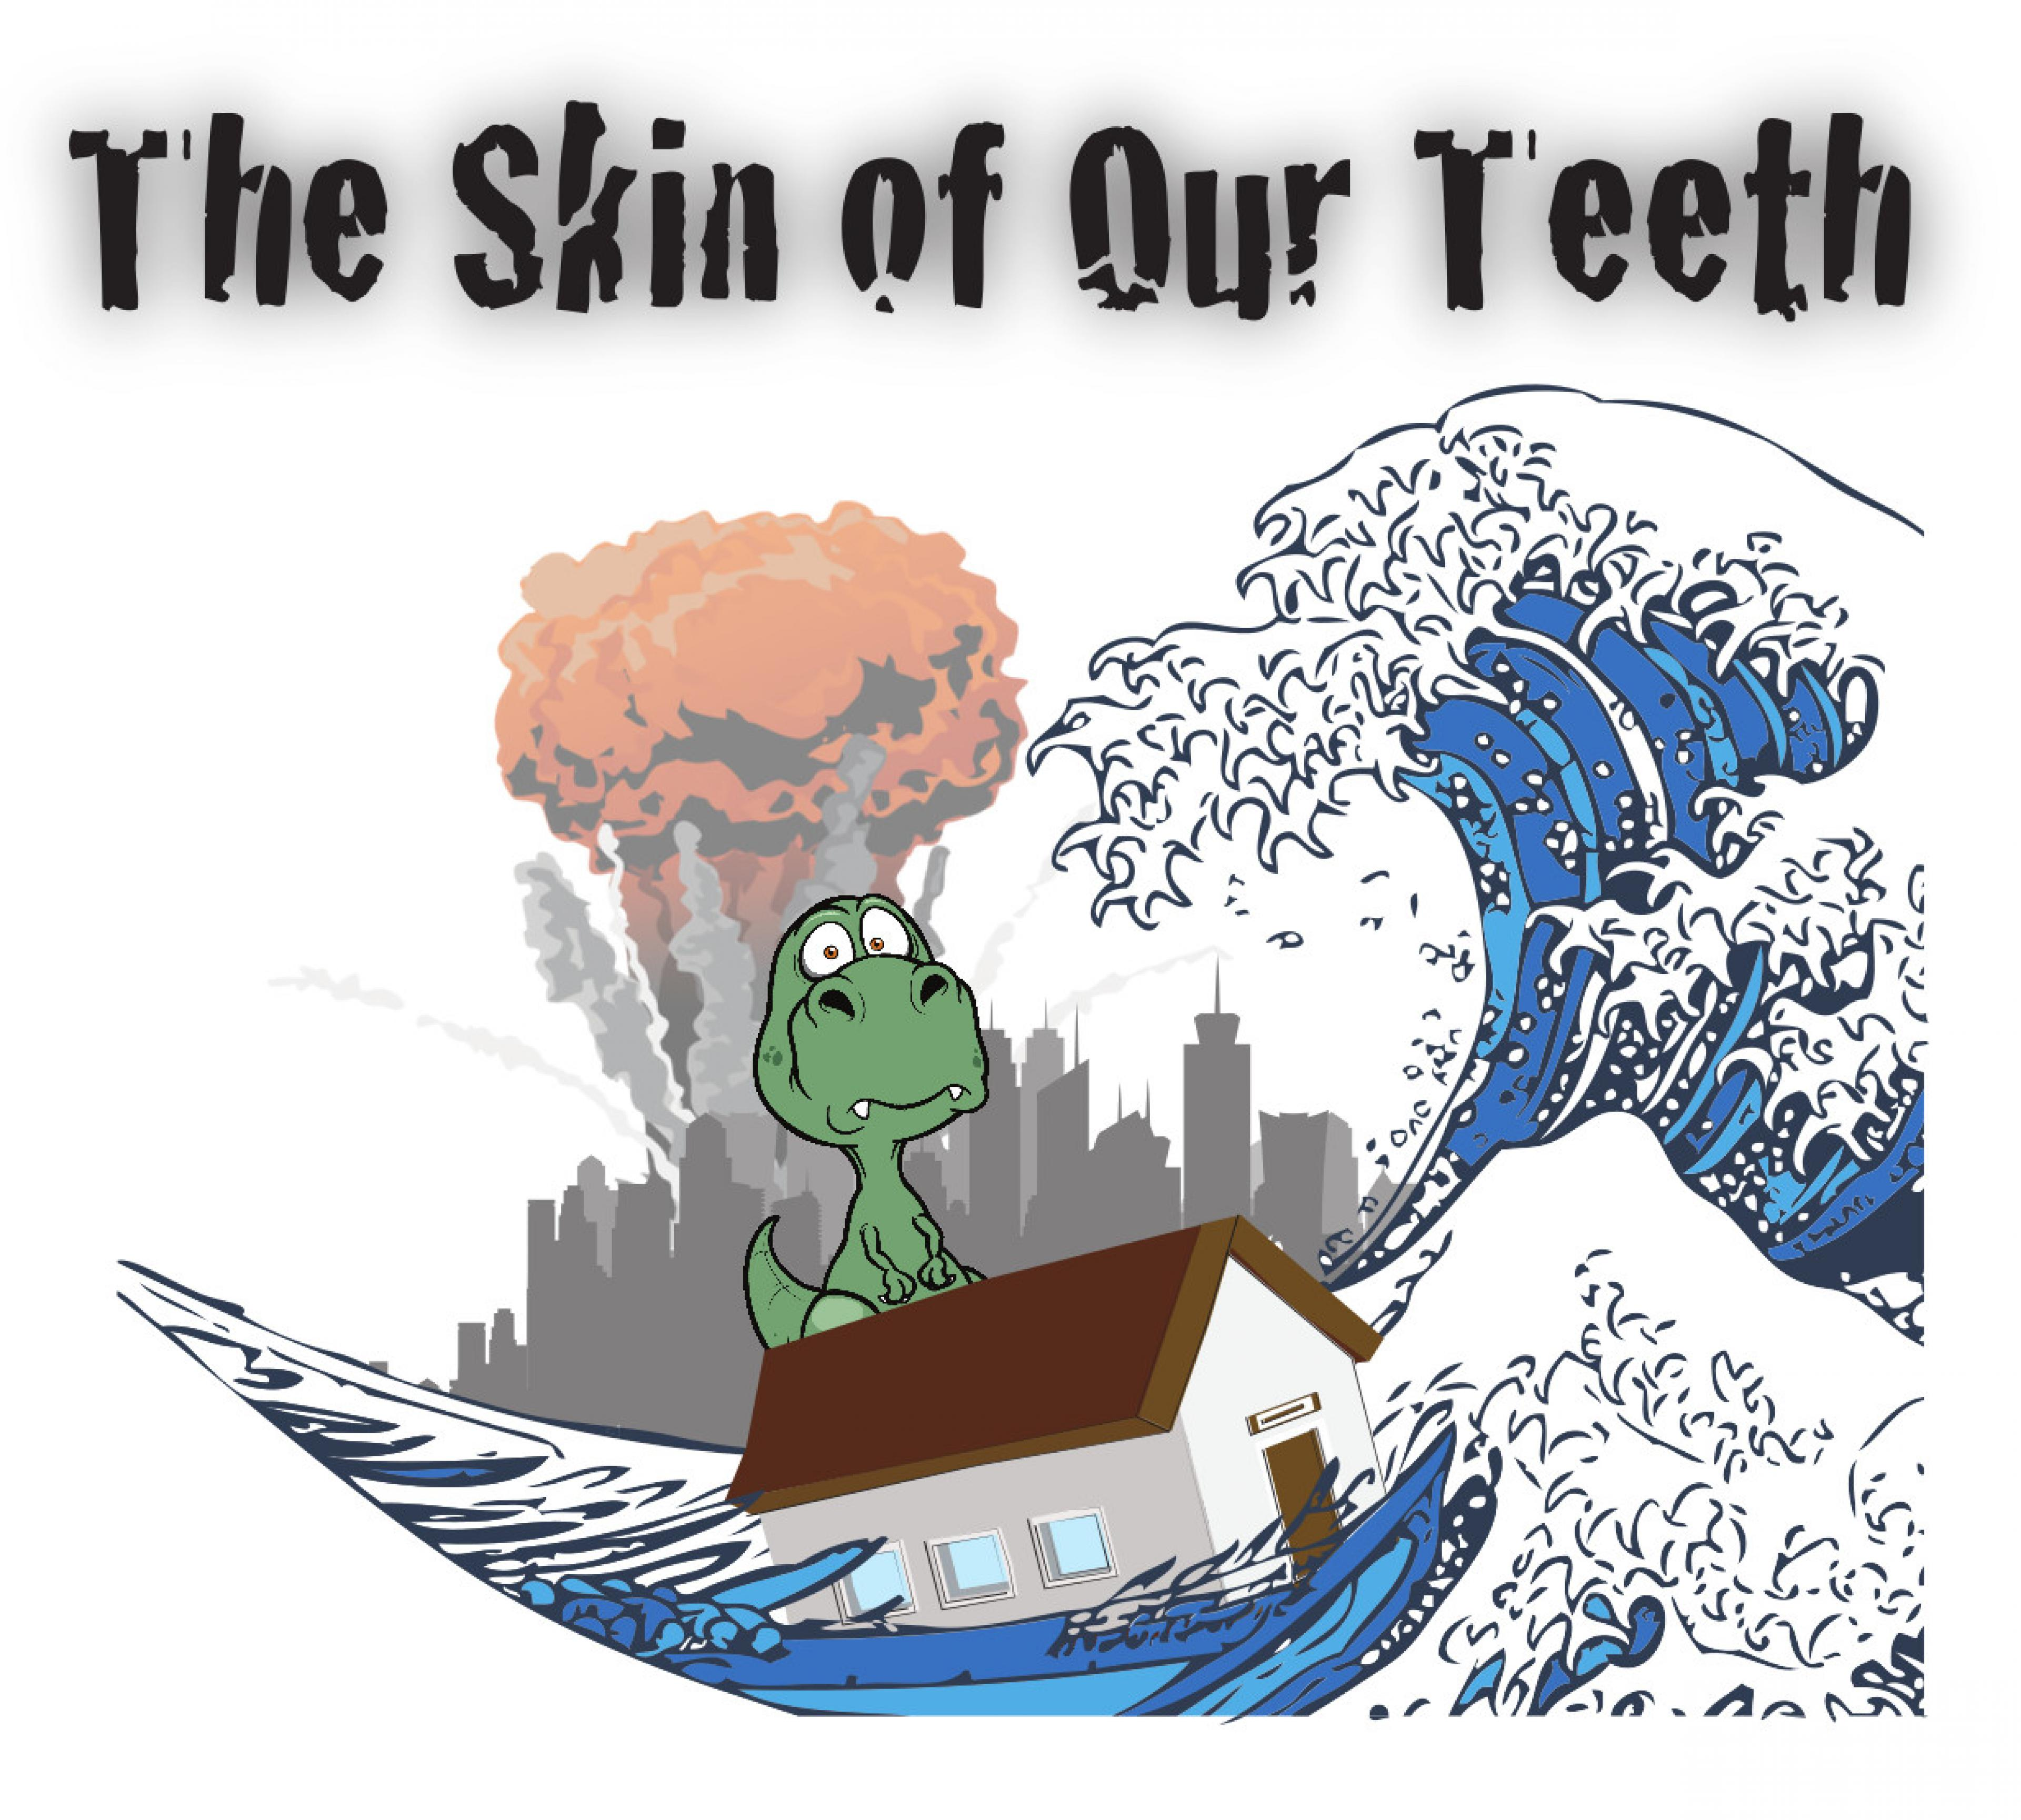 publicity image for The Skin of Our Teeth